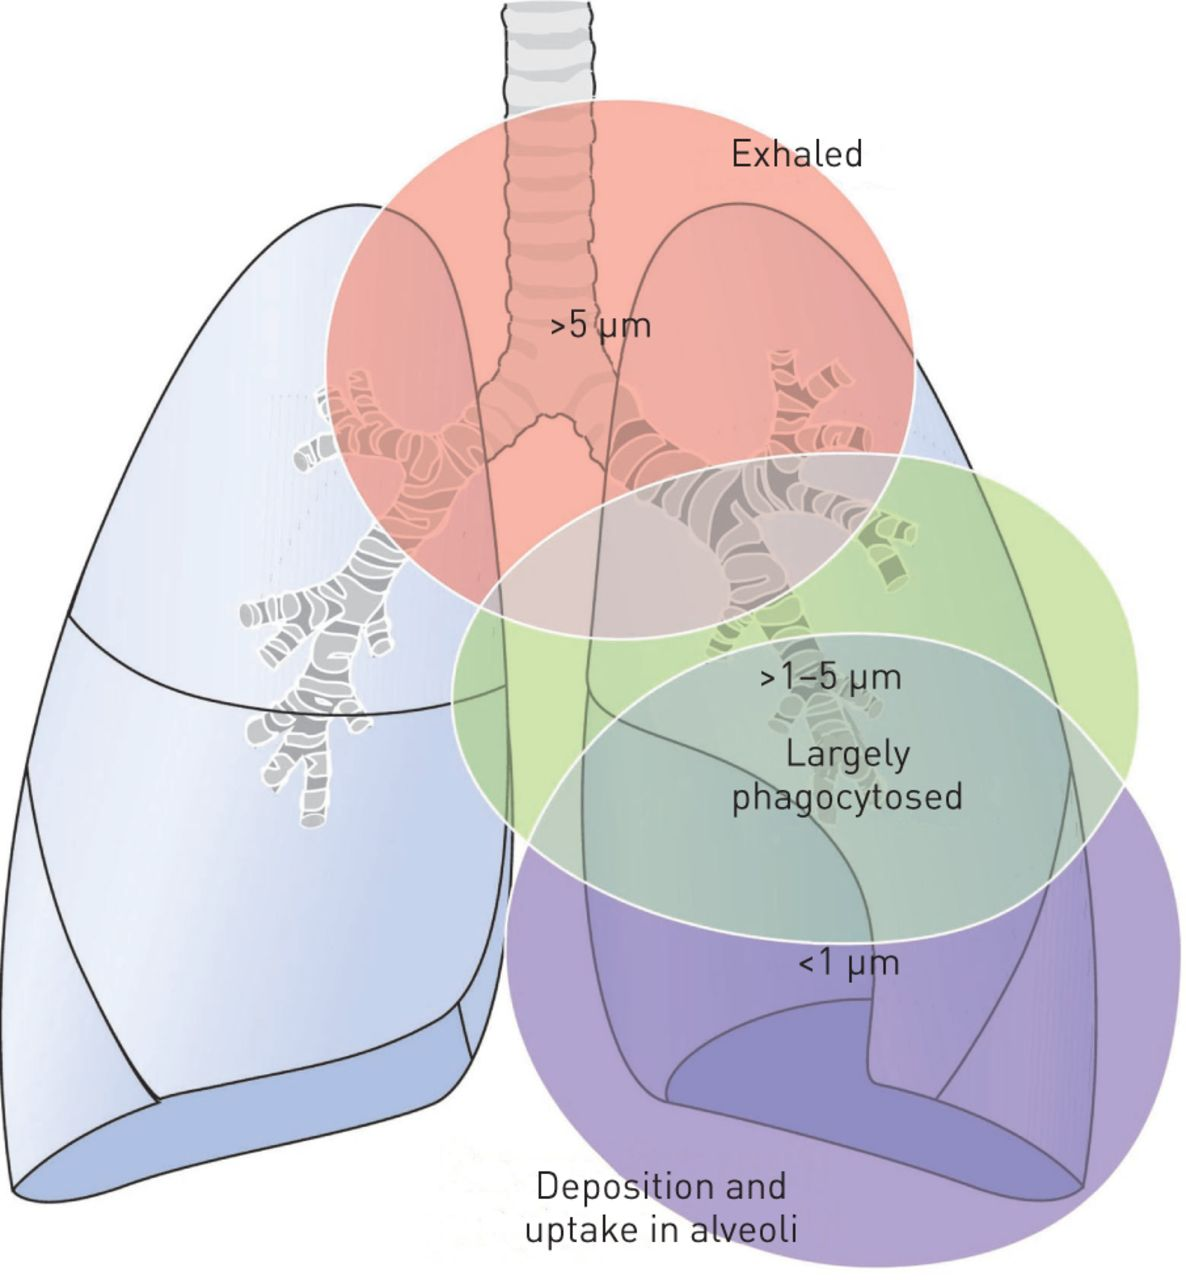 Medical Nanoparticles For Next Generation Drug Delivery To The Lungs Inhalation And Exhalation Diagram On Inhaling Exhaling Download Figure